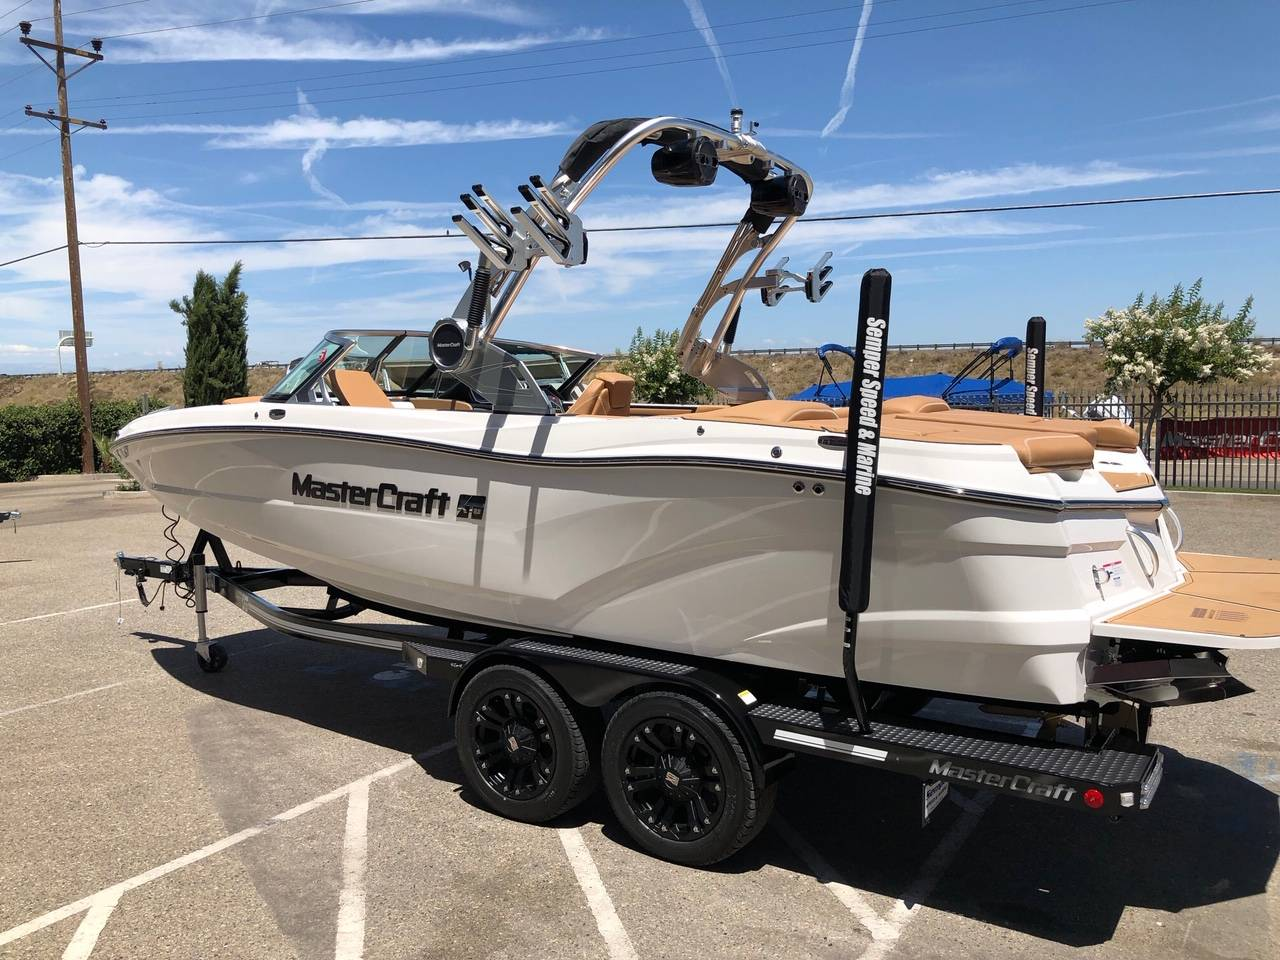 2019 Mastercraft XT22 in Madera, California - Photo 26